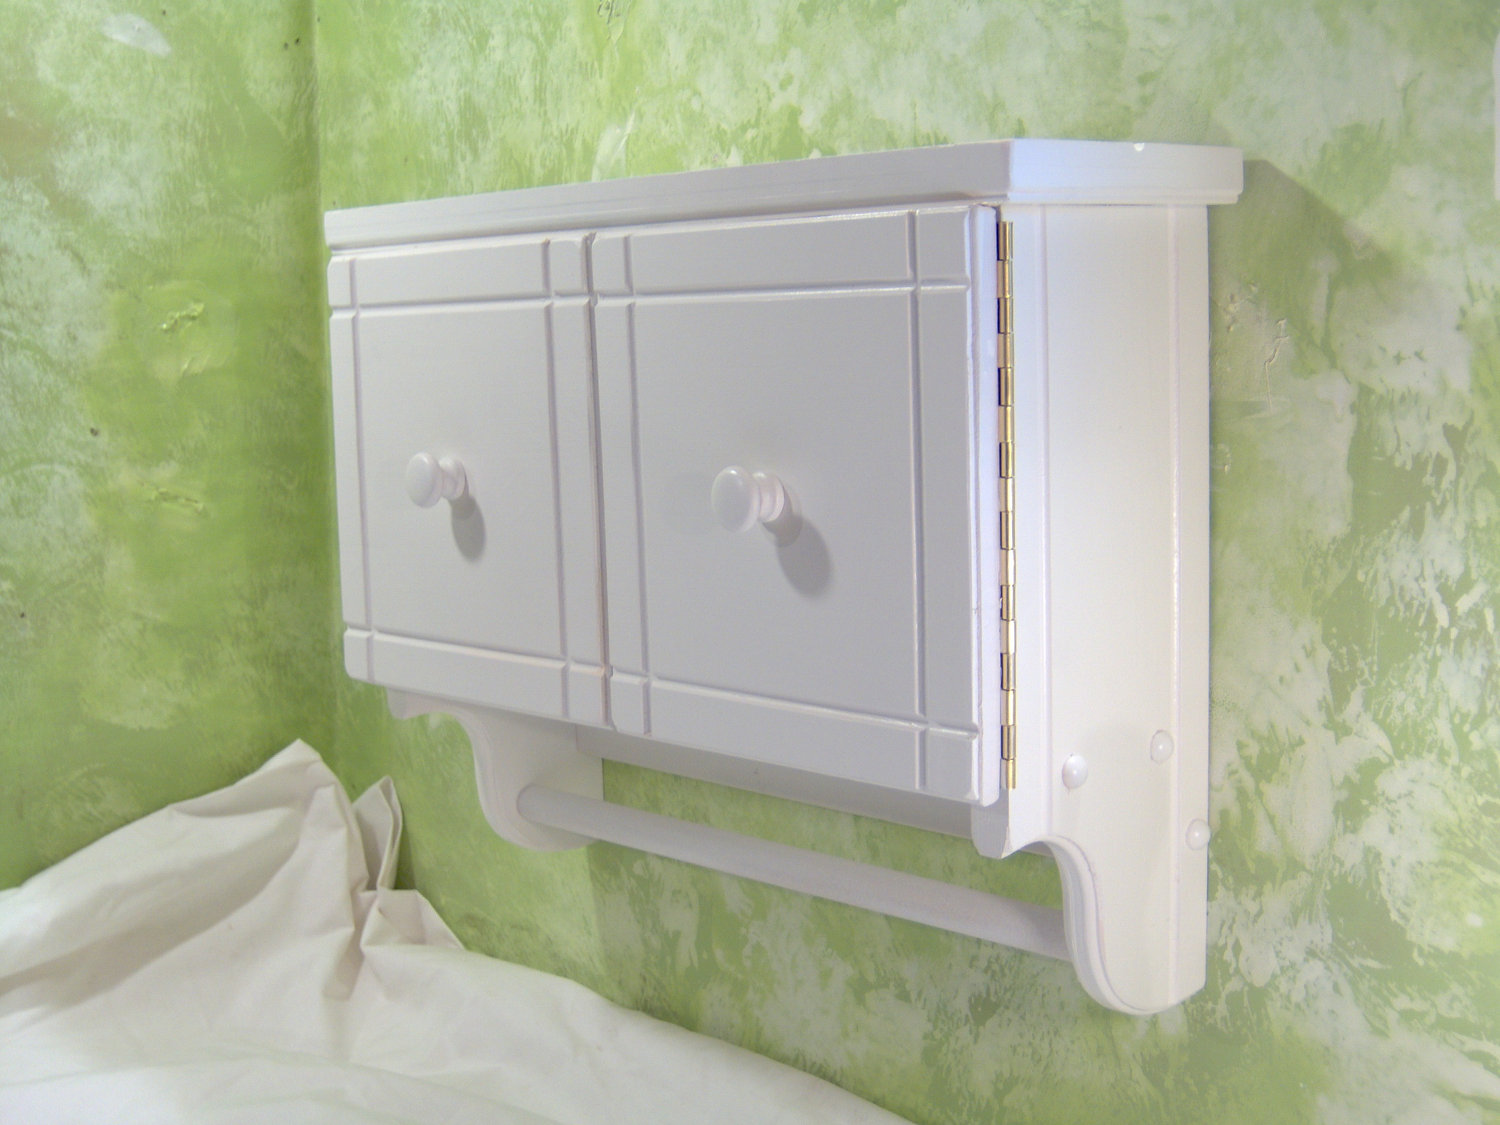 Genial Bathroom Wall Cabinets White